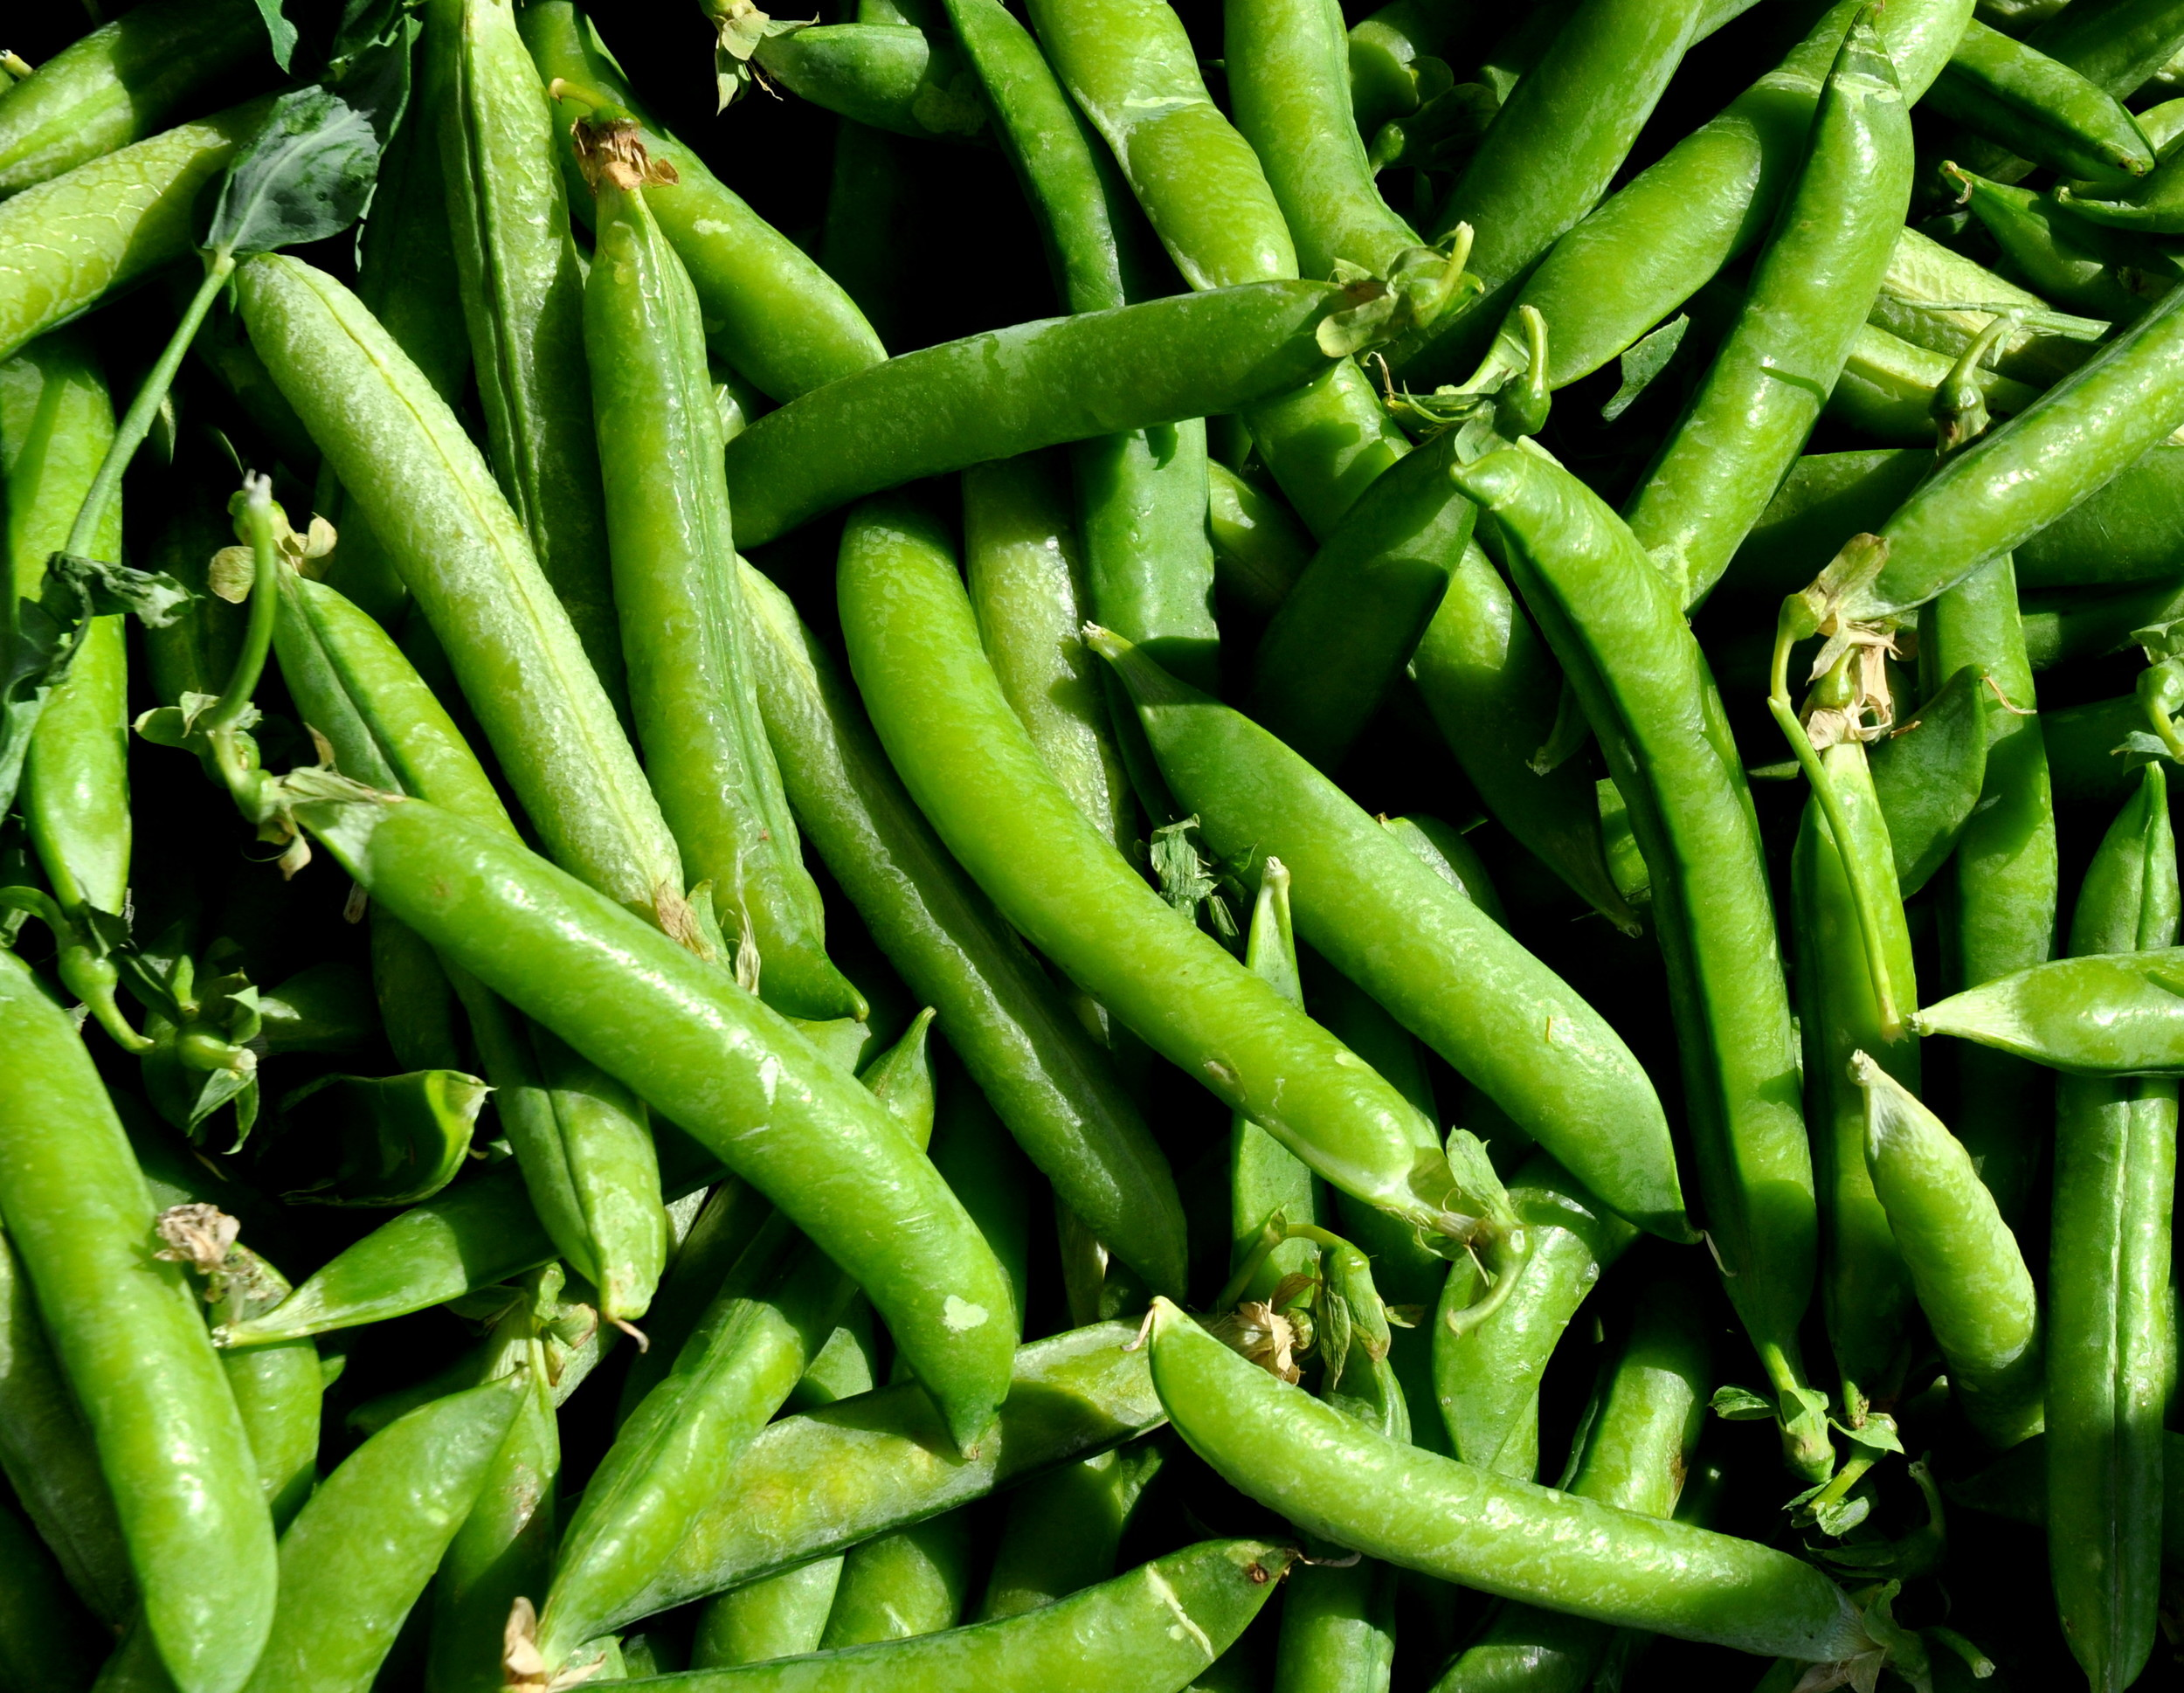 English shelling peas from Alm Hill Gardens. Photo copyright 2013 by Zachary D. Lyons.